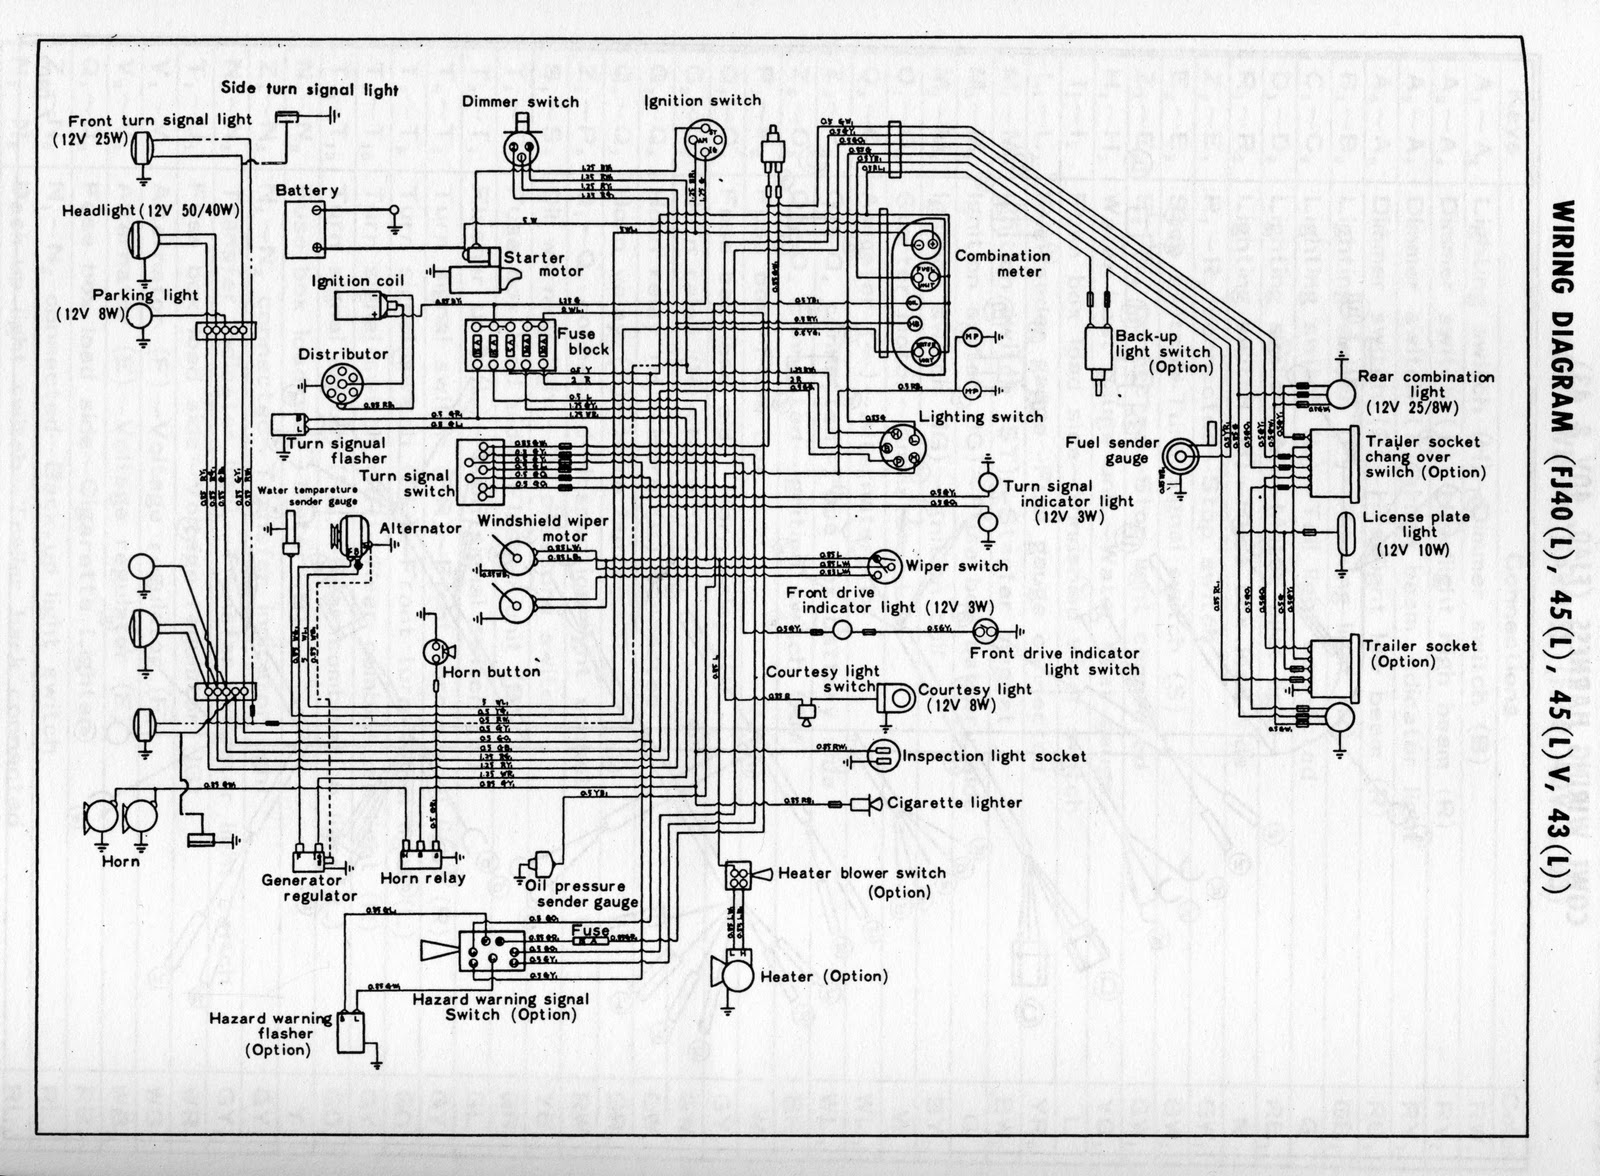 FJ40wiring small deep cuts february 2011 2004 big dog wiring diagram at eliteediting.co